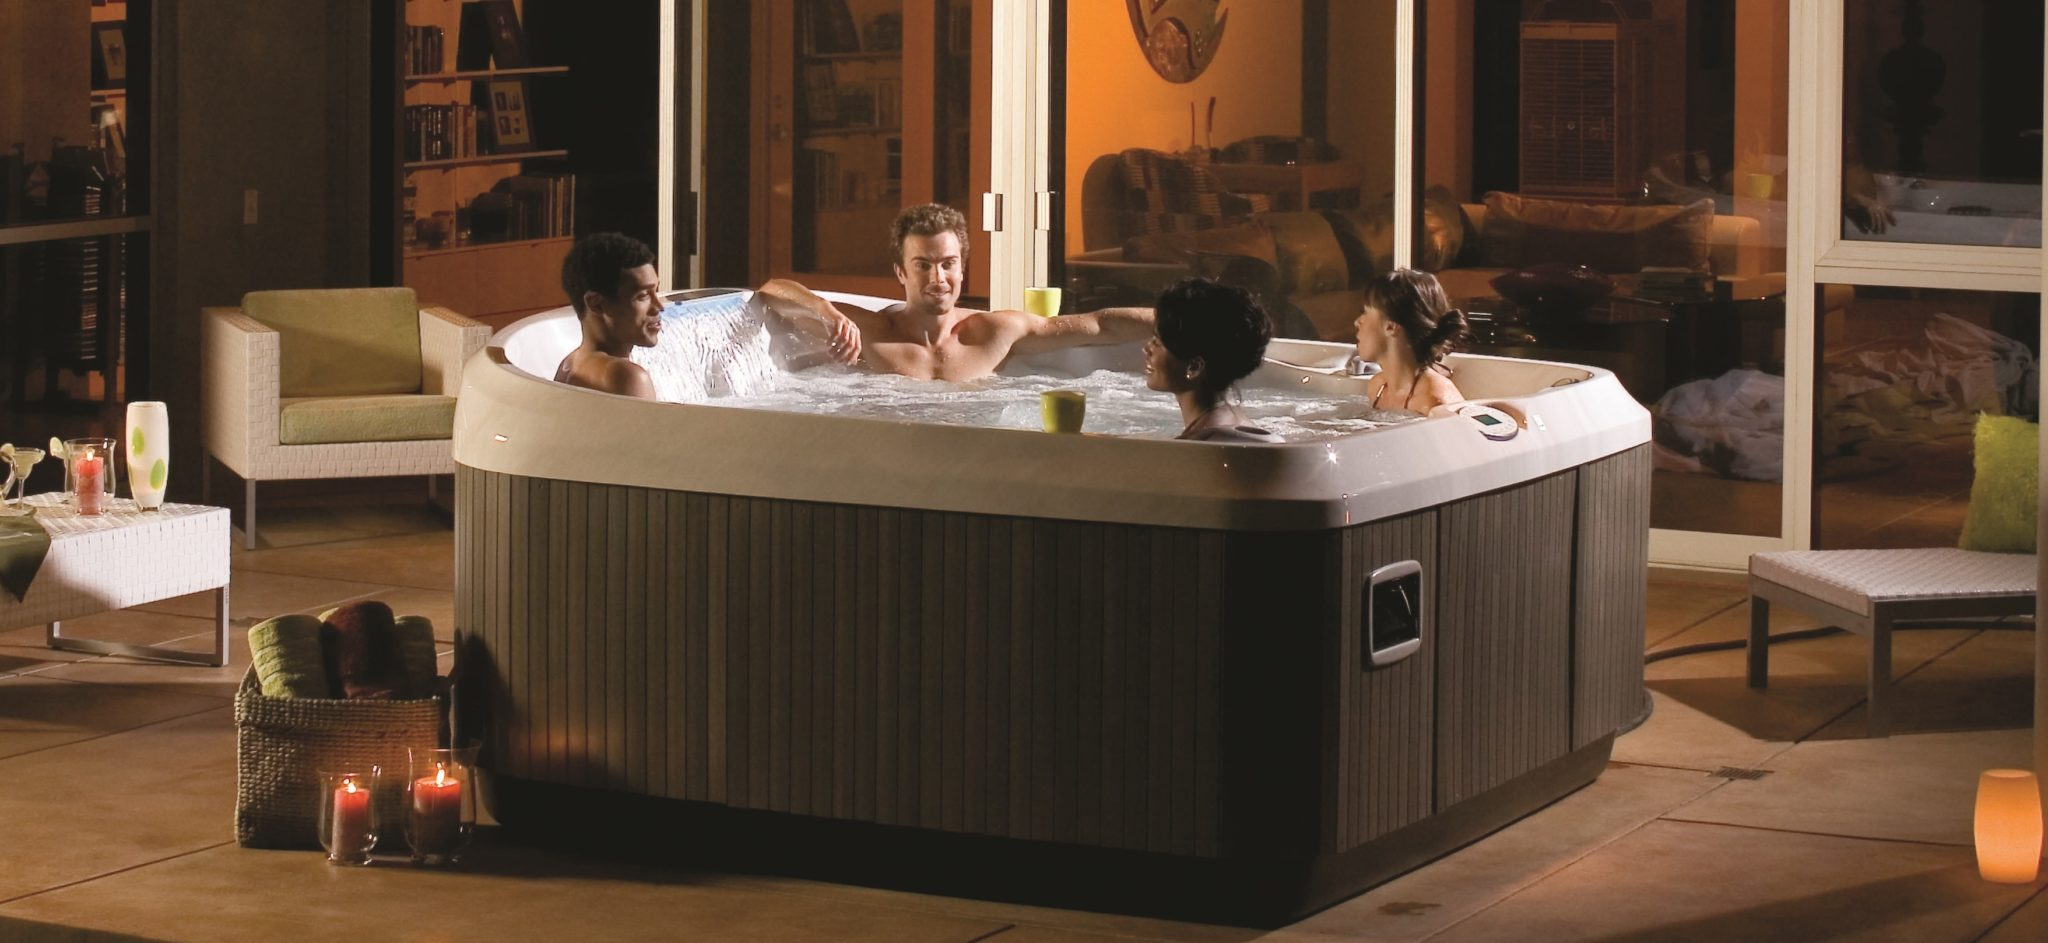 offres exceptionnelles jacuzzi l 39 occasion du black friday culturespas. Black Bedroom Furniture Sets. Home Design Ideas